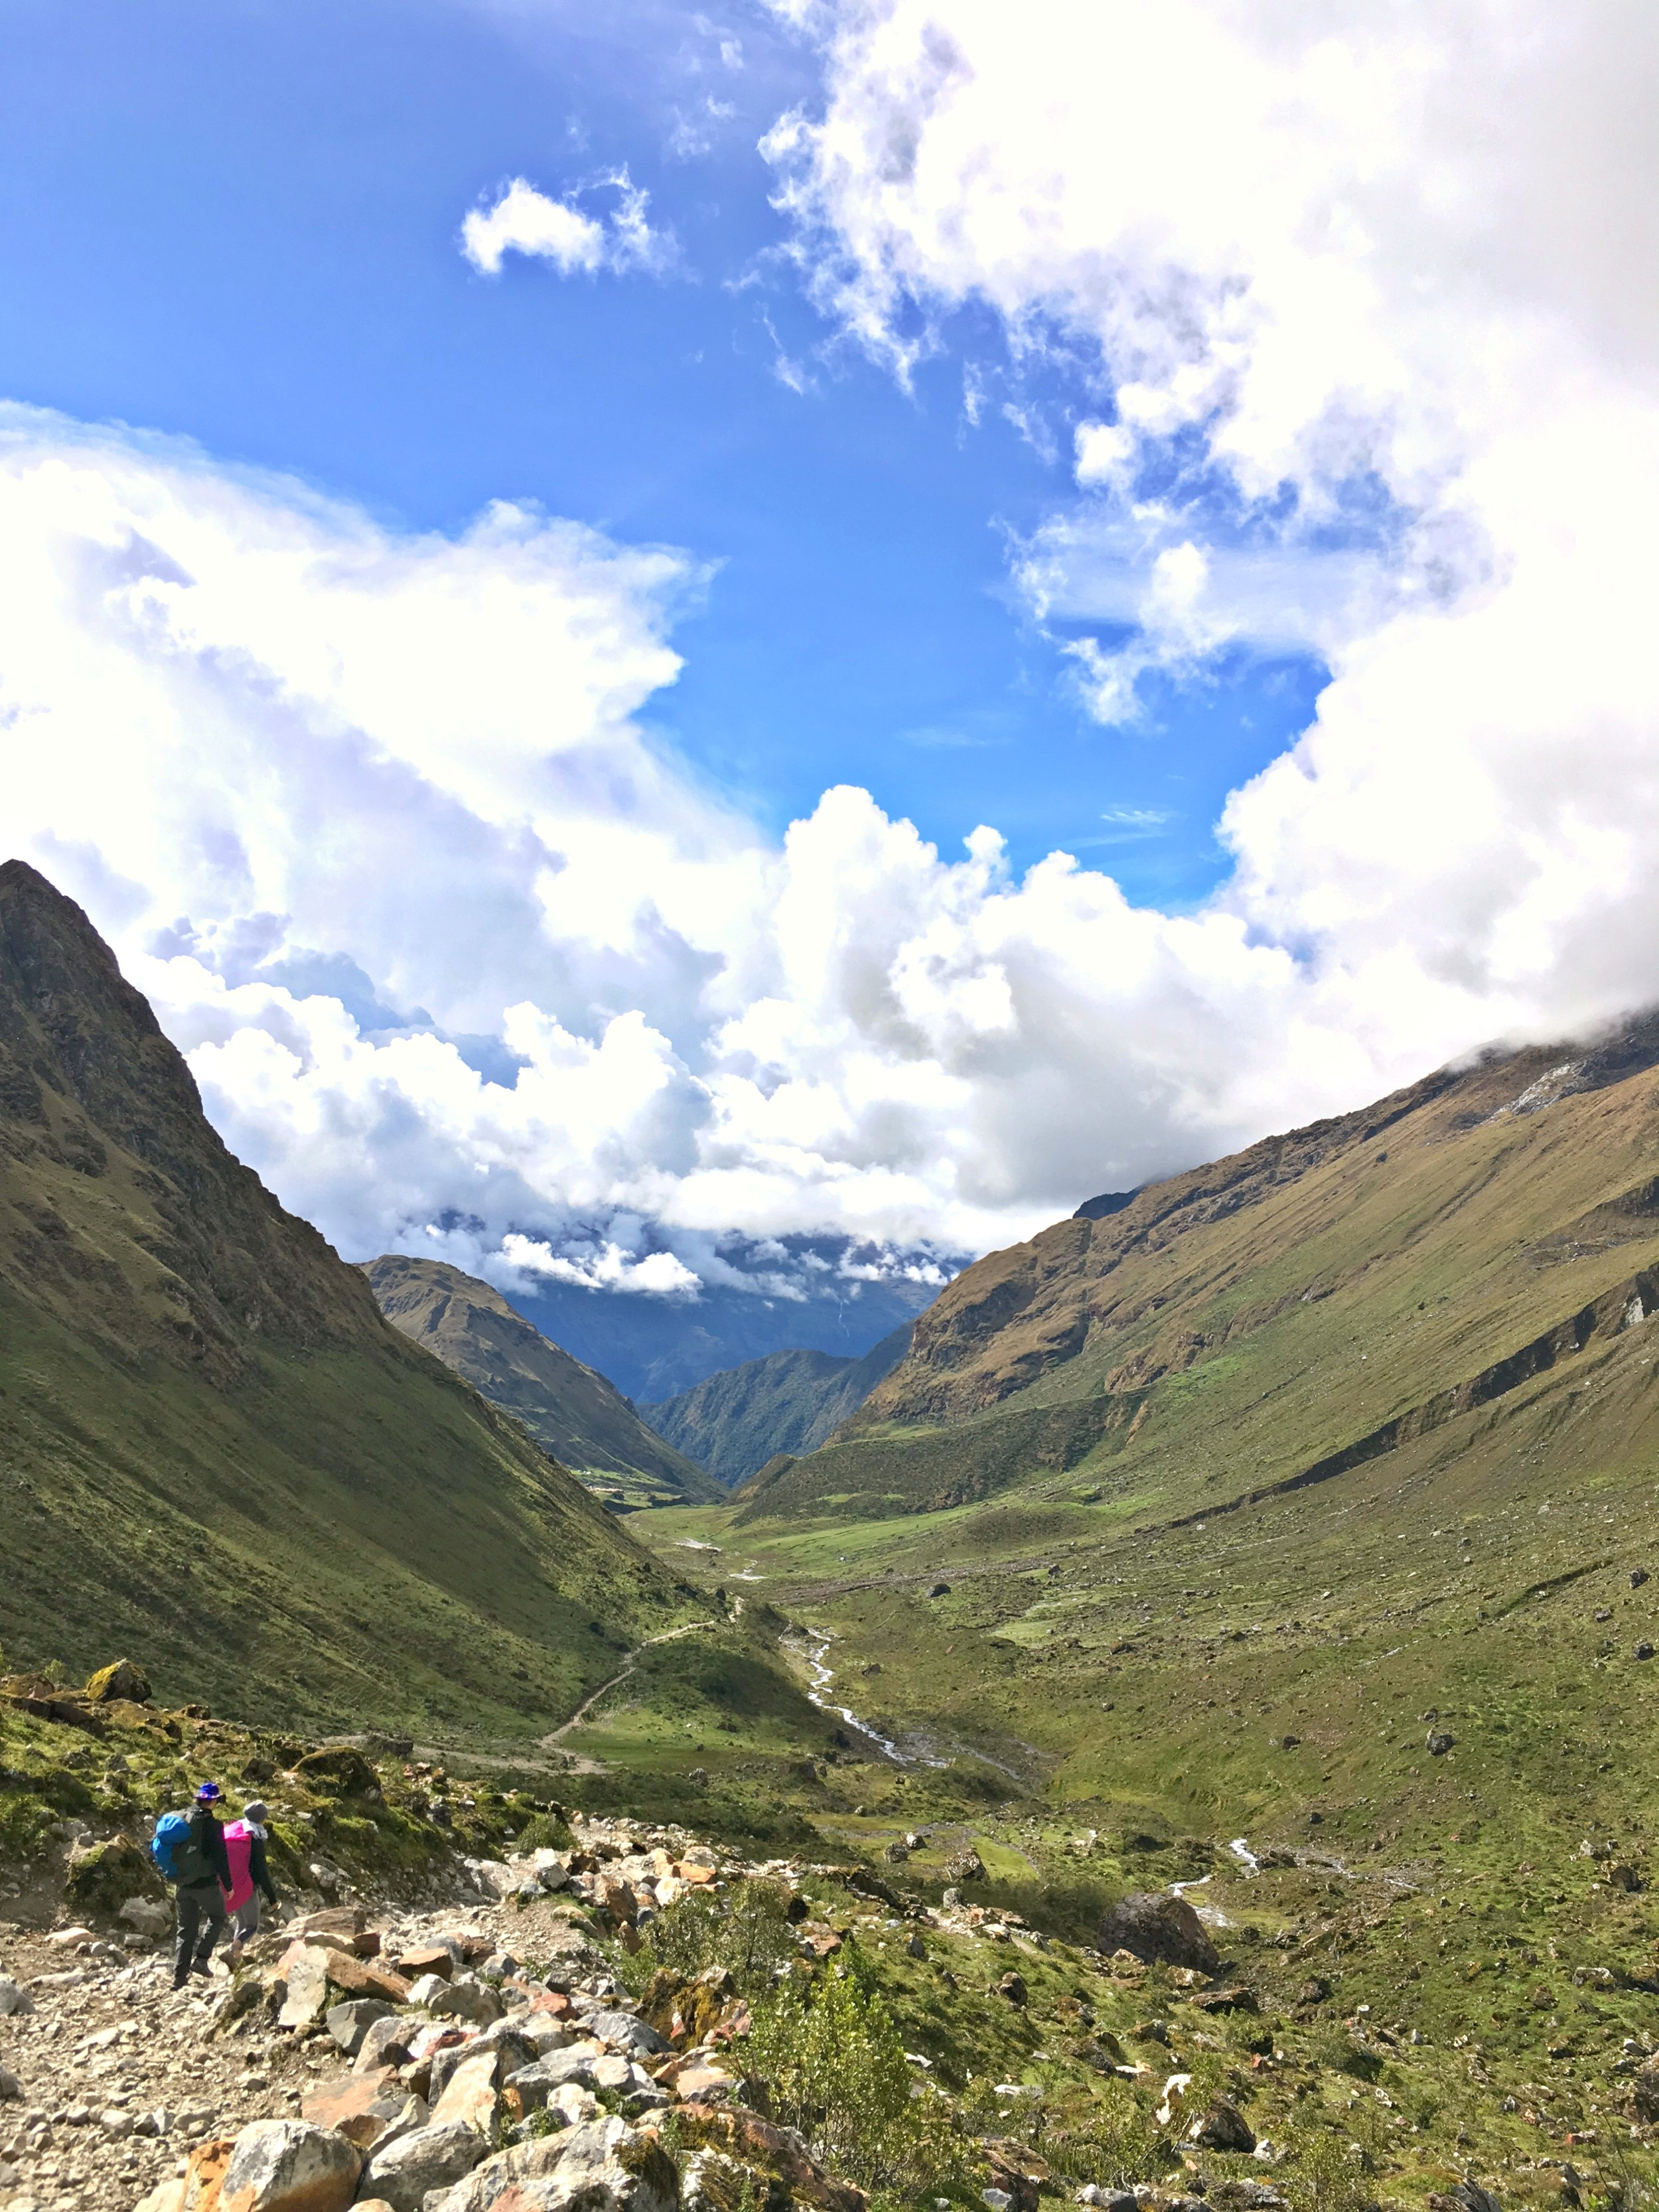 Hiking down from Salkantay Pass, improved weather was a welcomed change